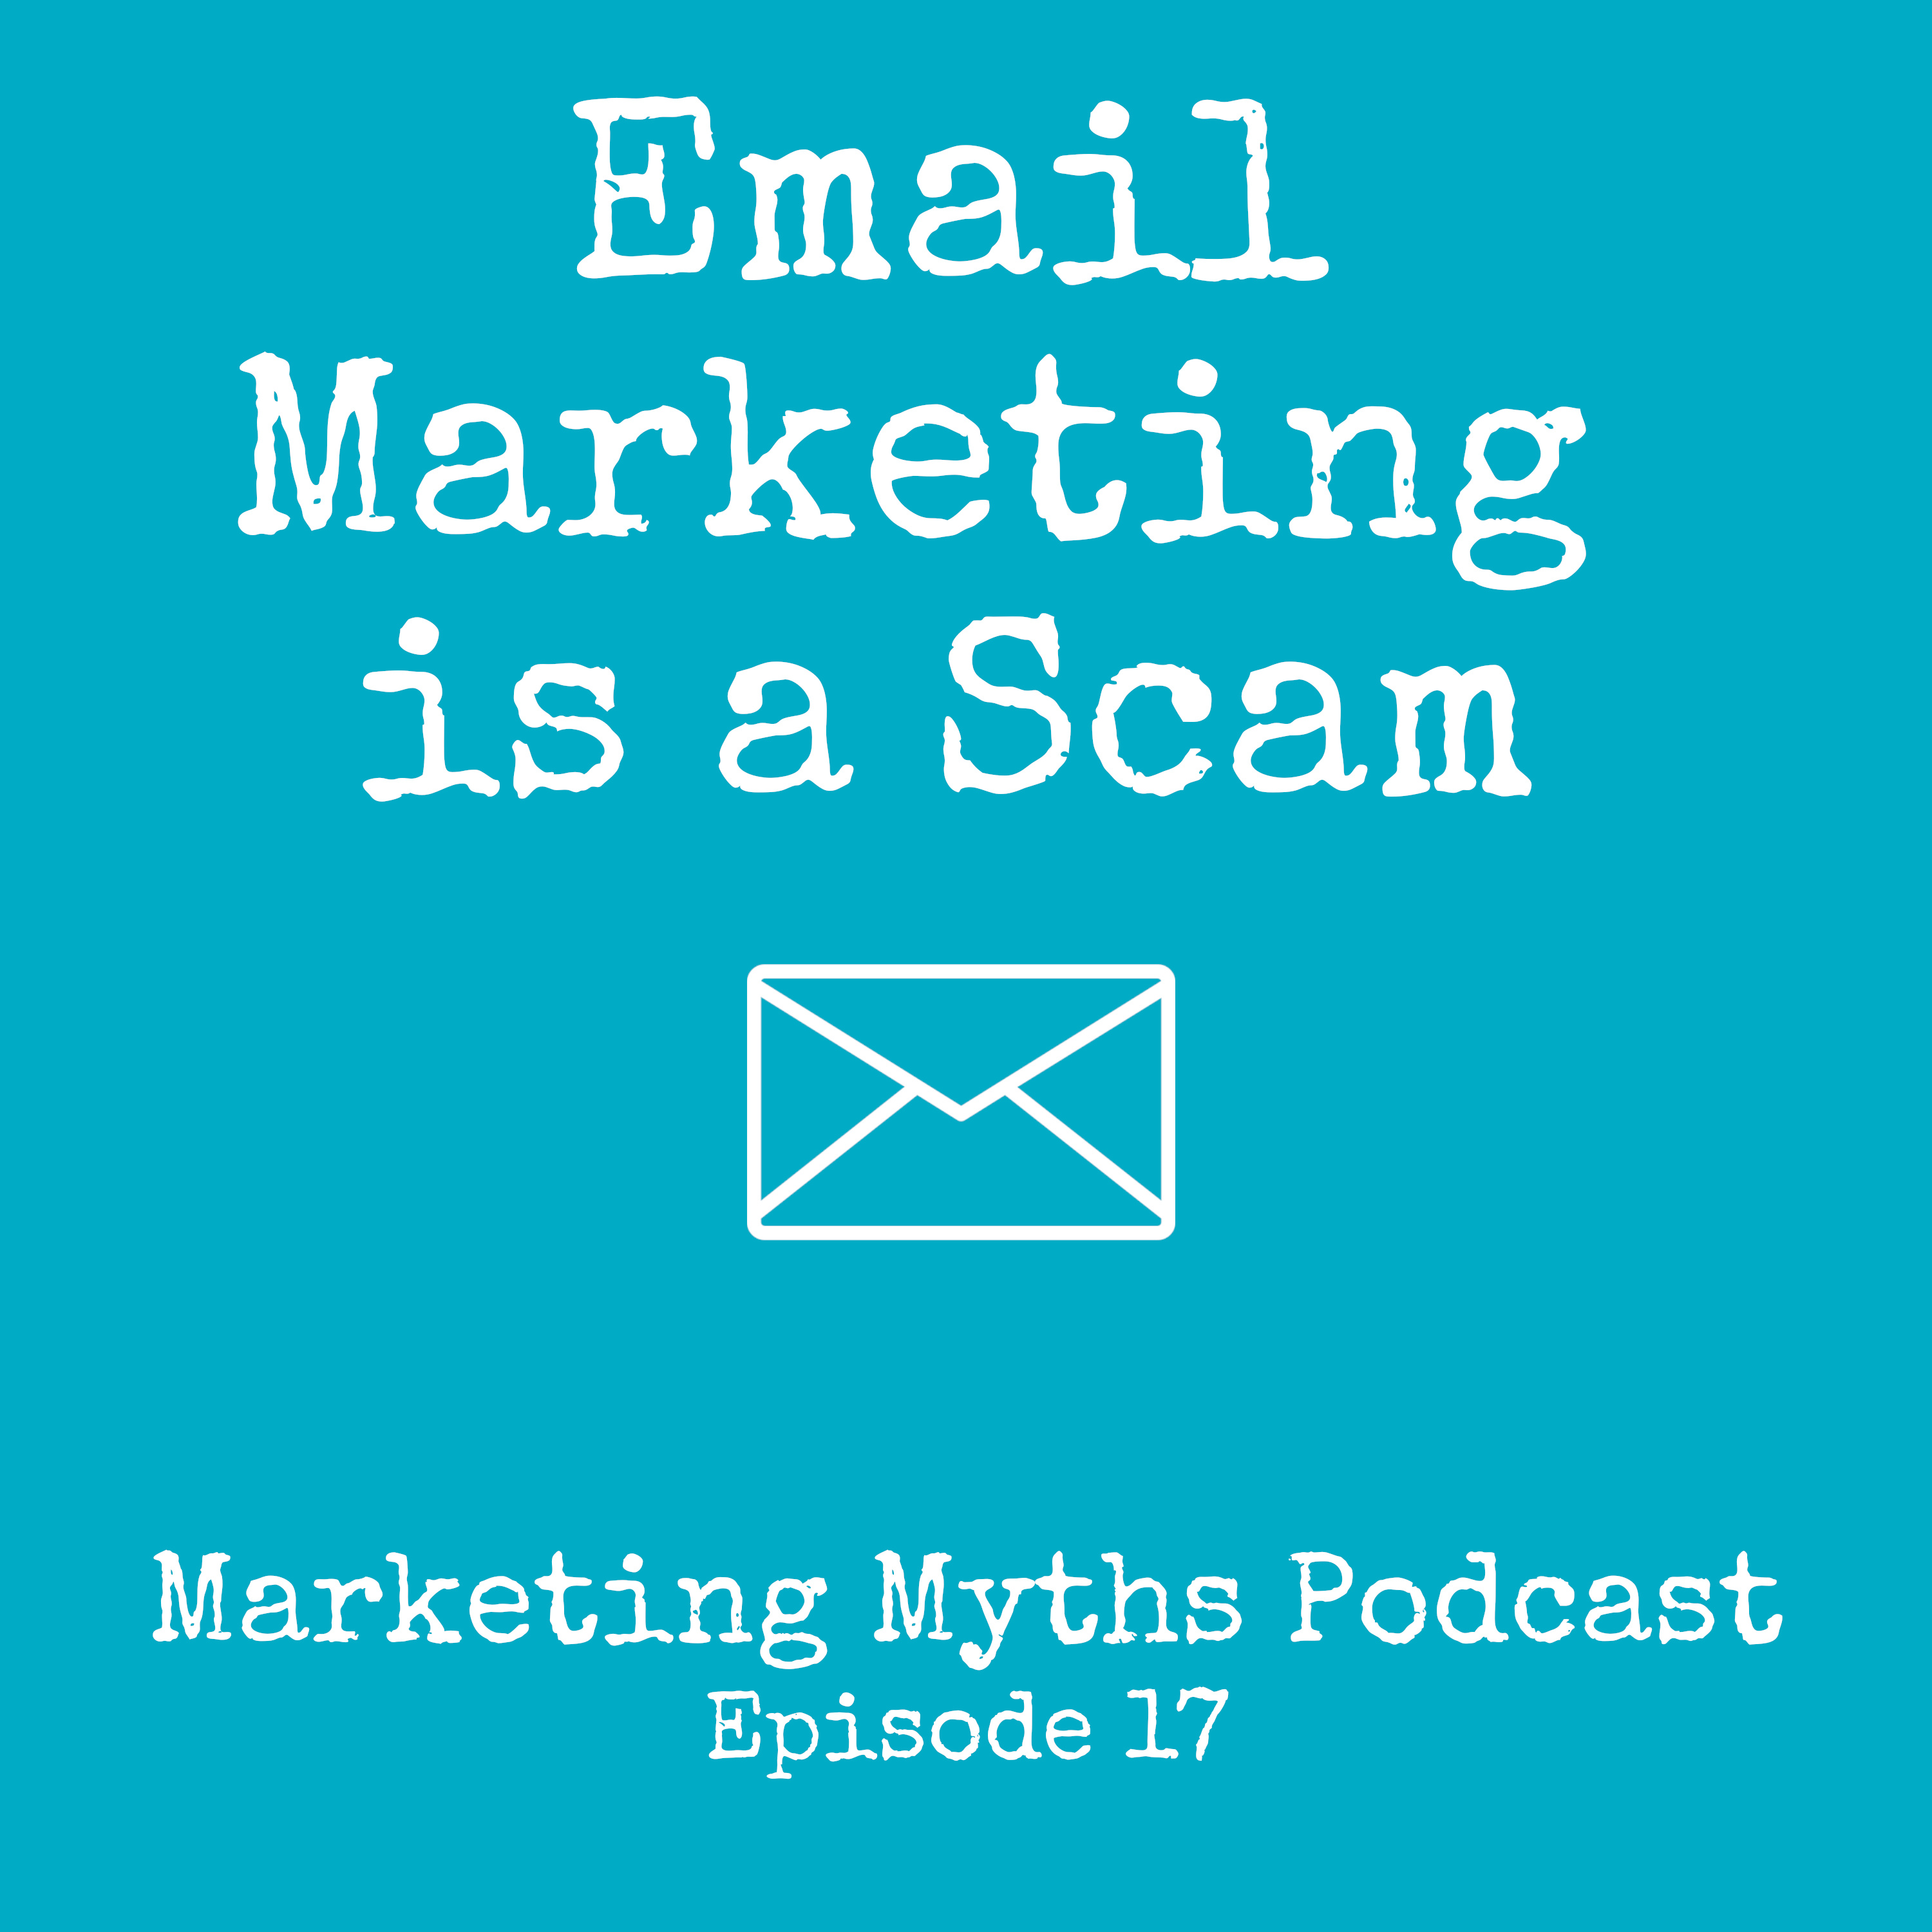 Email Marketing is a Scam